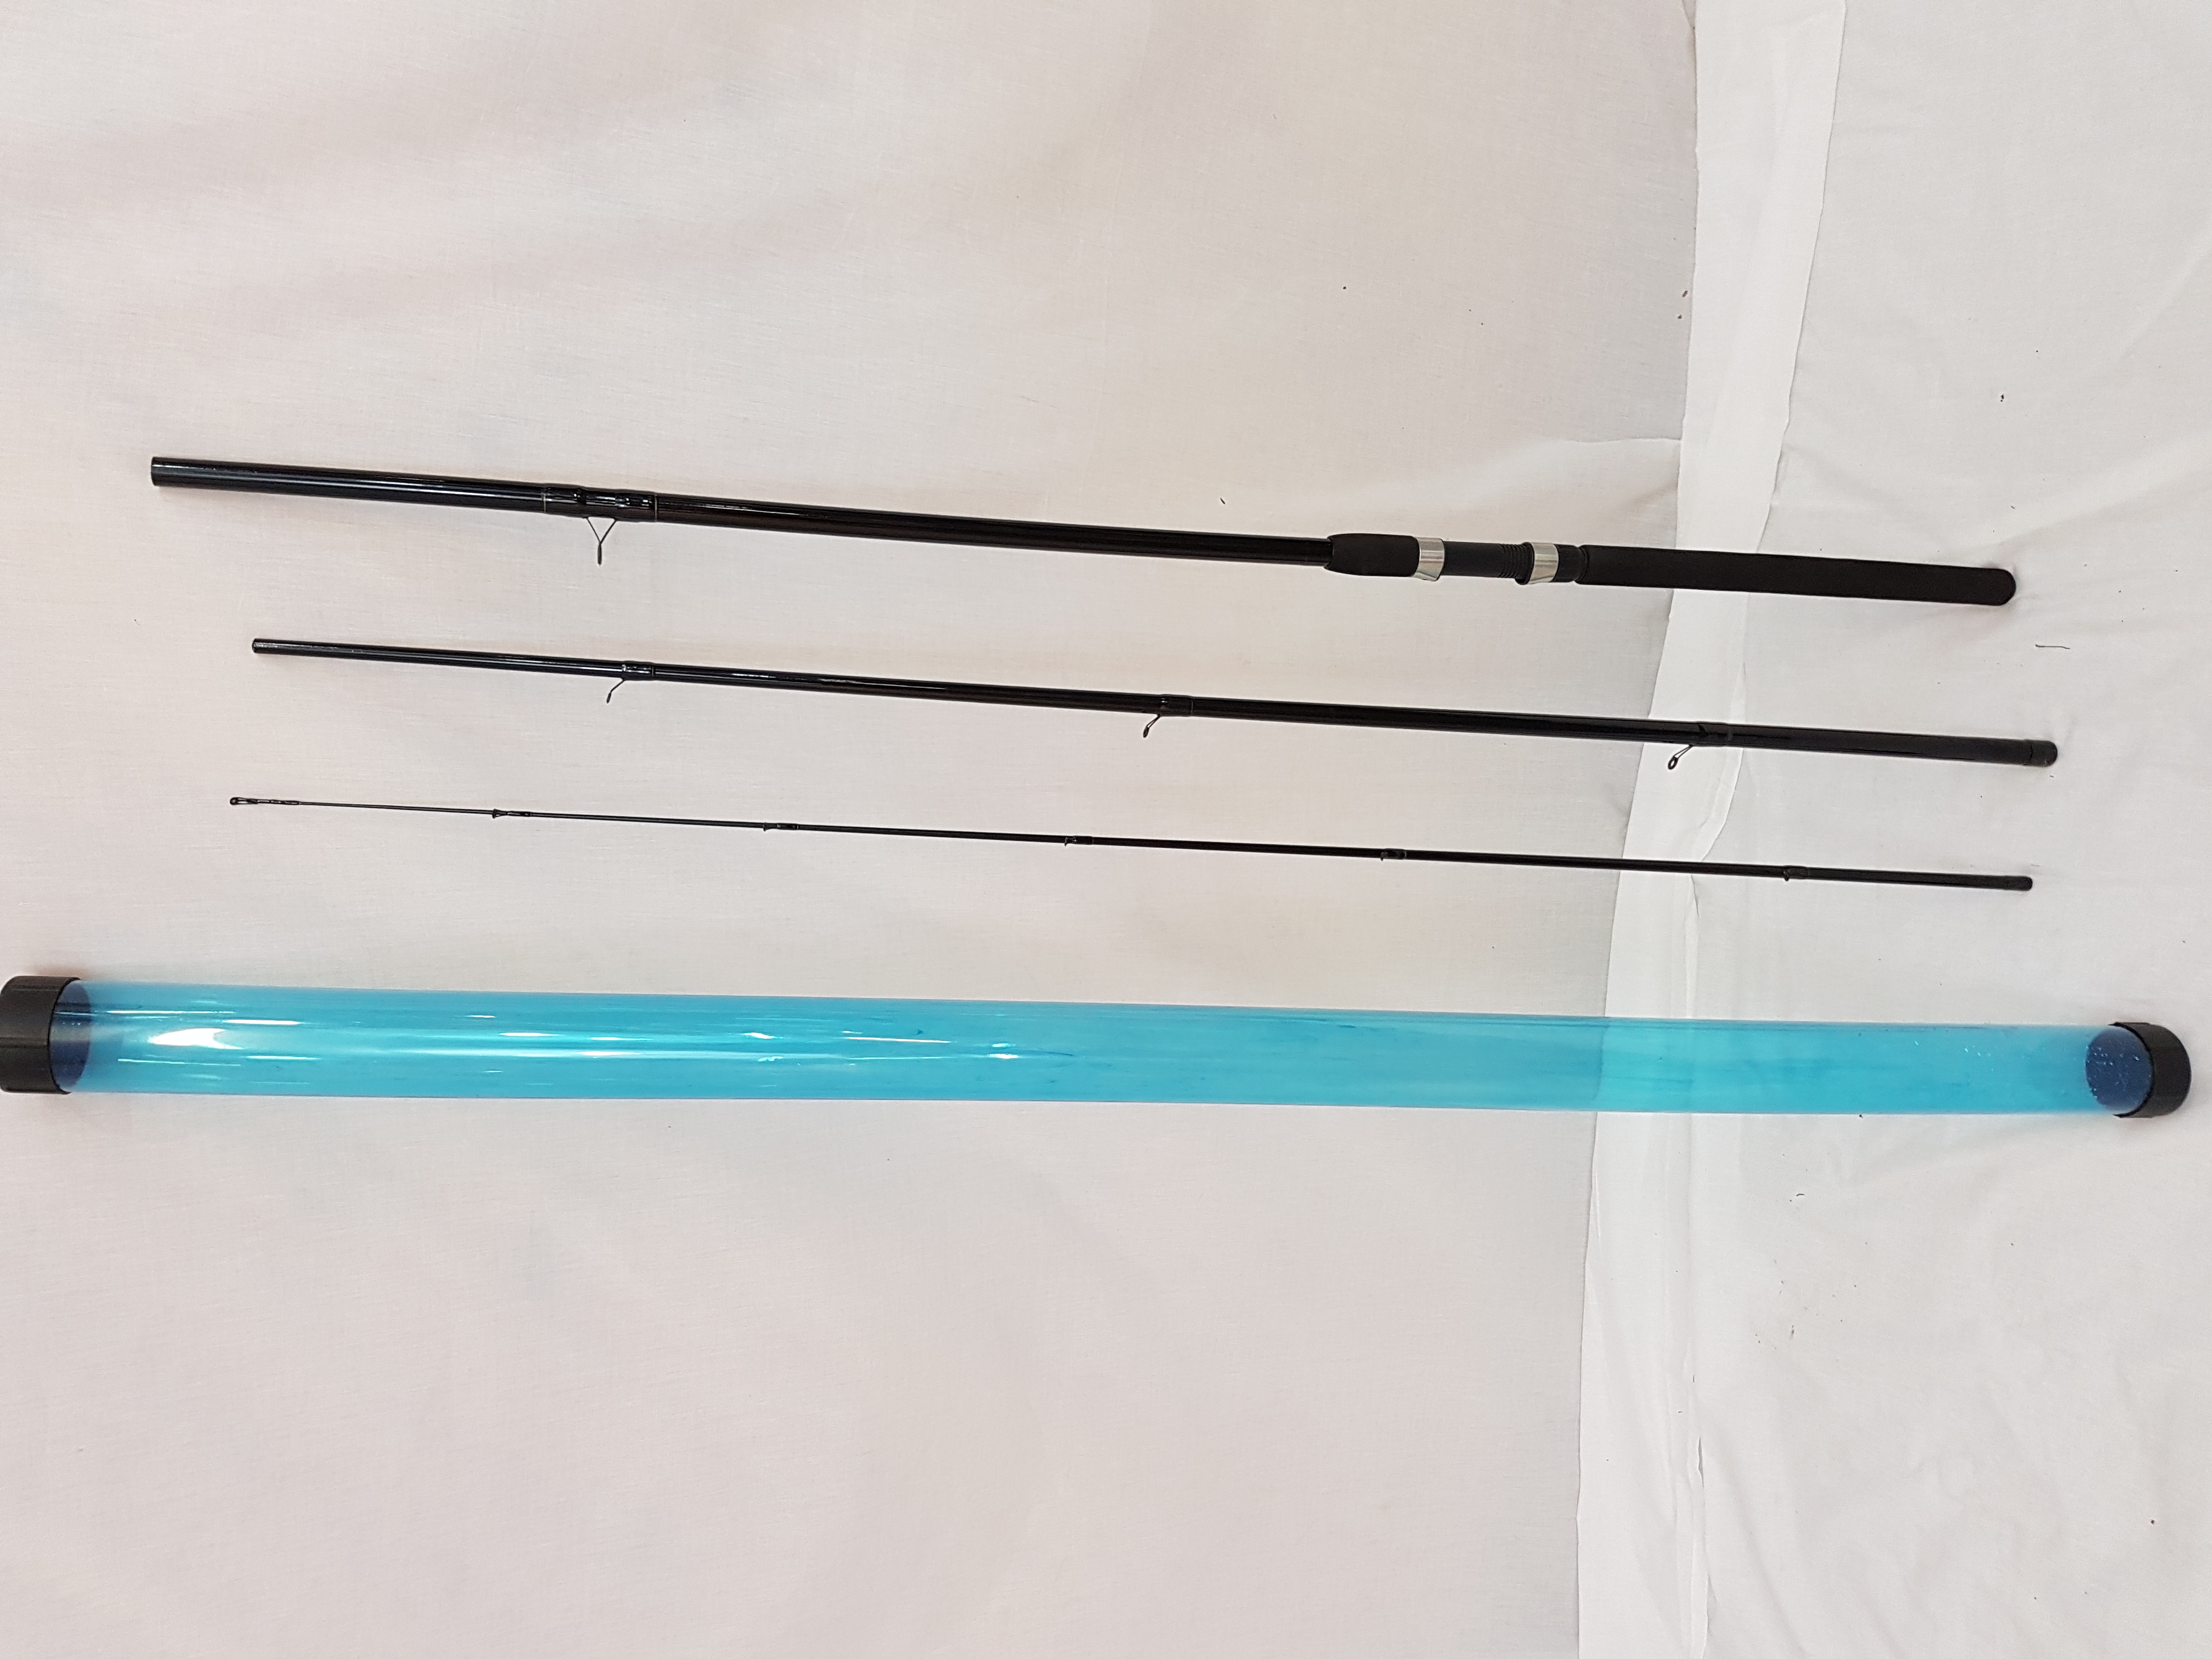 Match fishing rod 12 39 3 sec in rod tube with daiwa for Fishing pole tubes